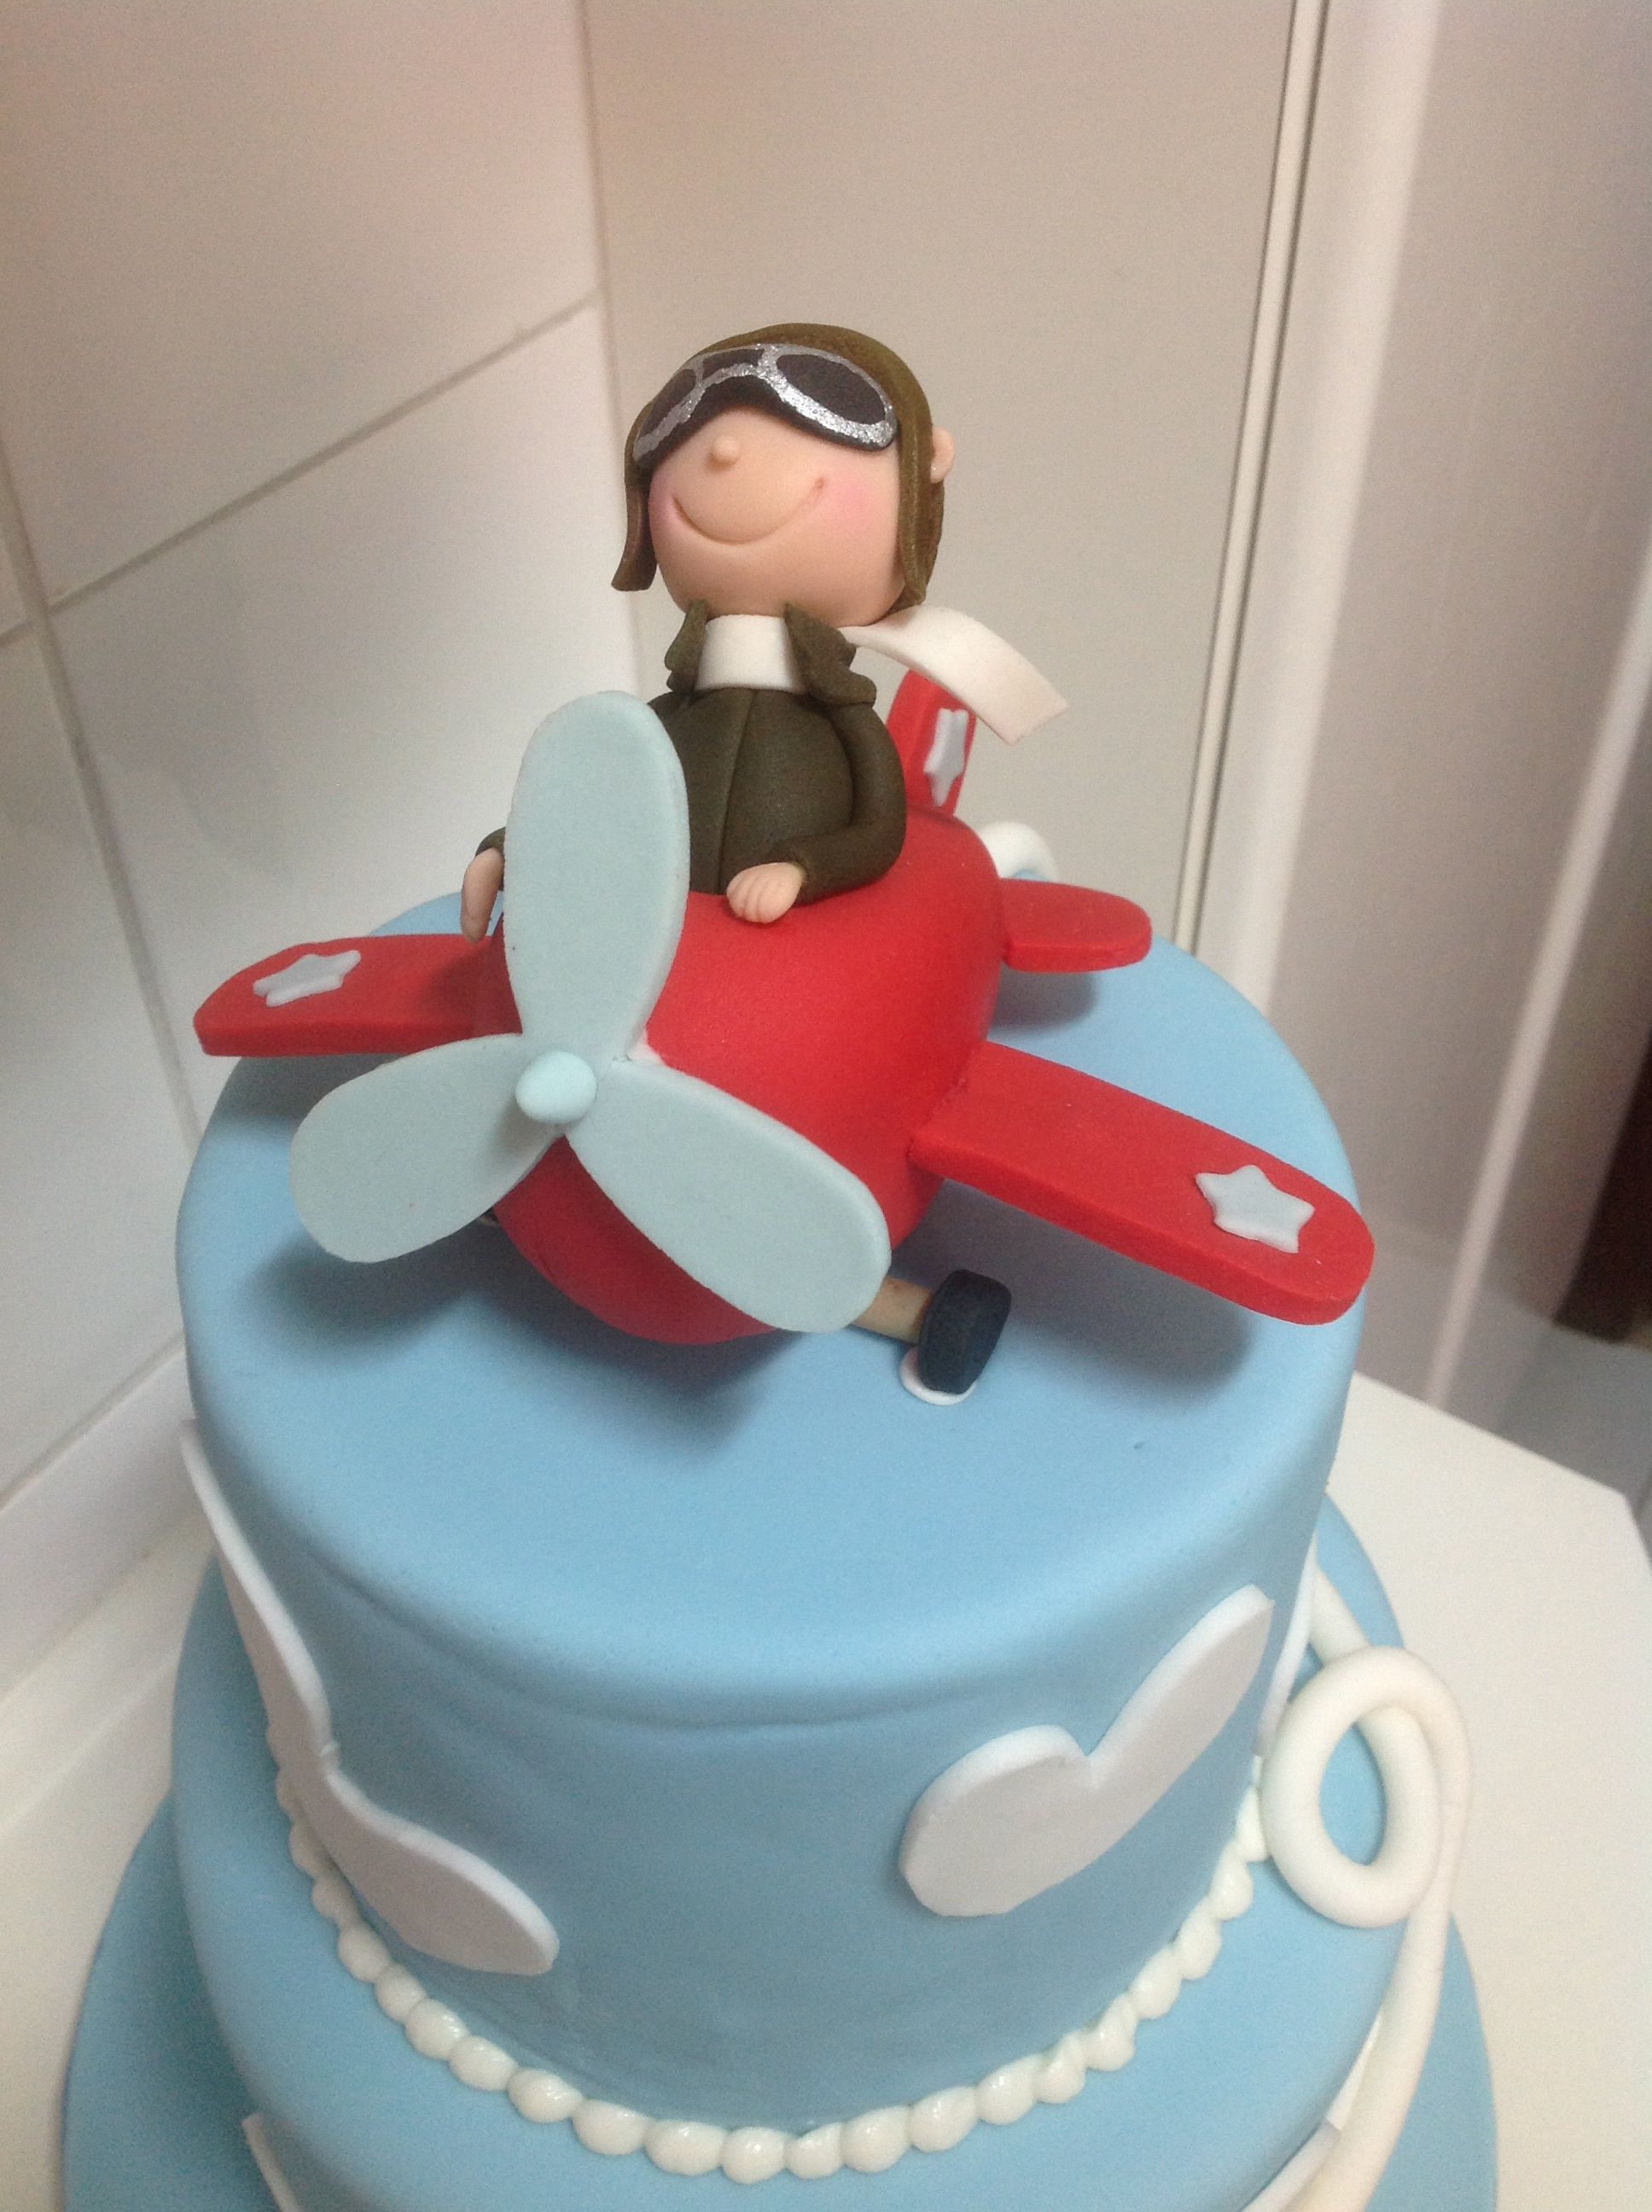 Airplane cake topper cake decorating pinterest for Airplane cake decoration